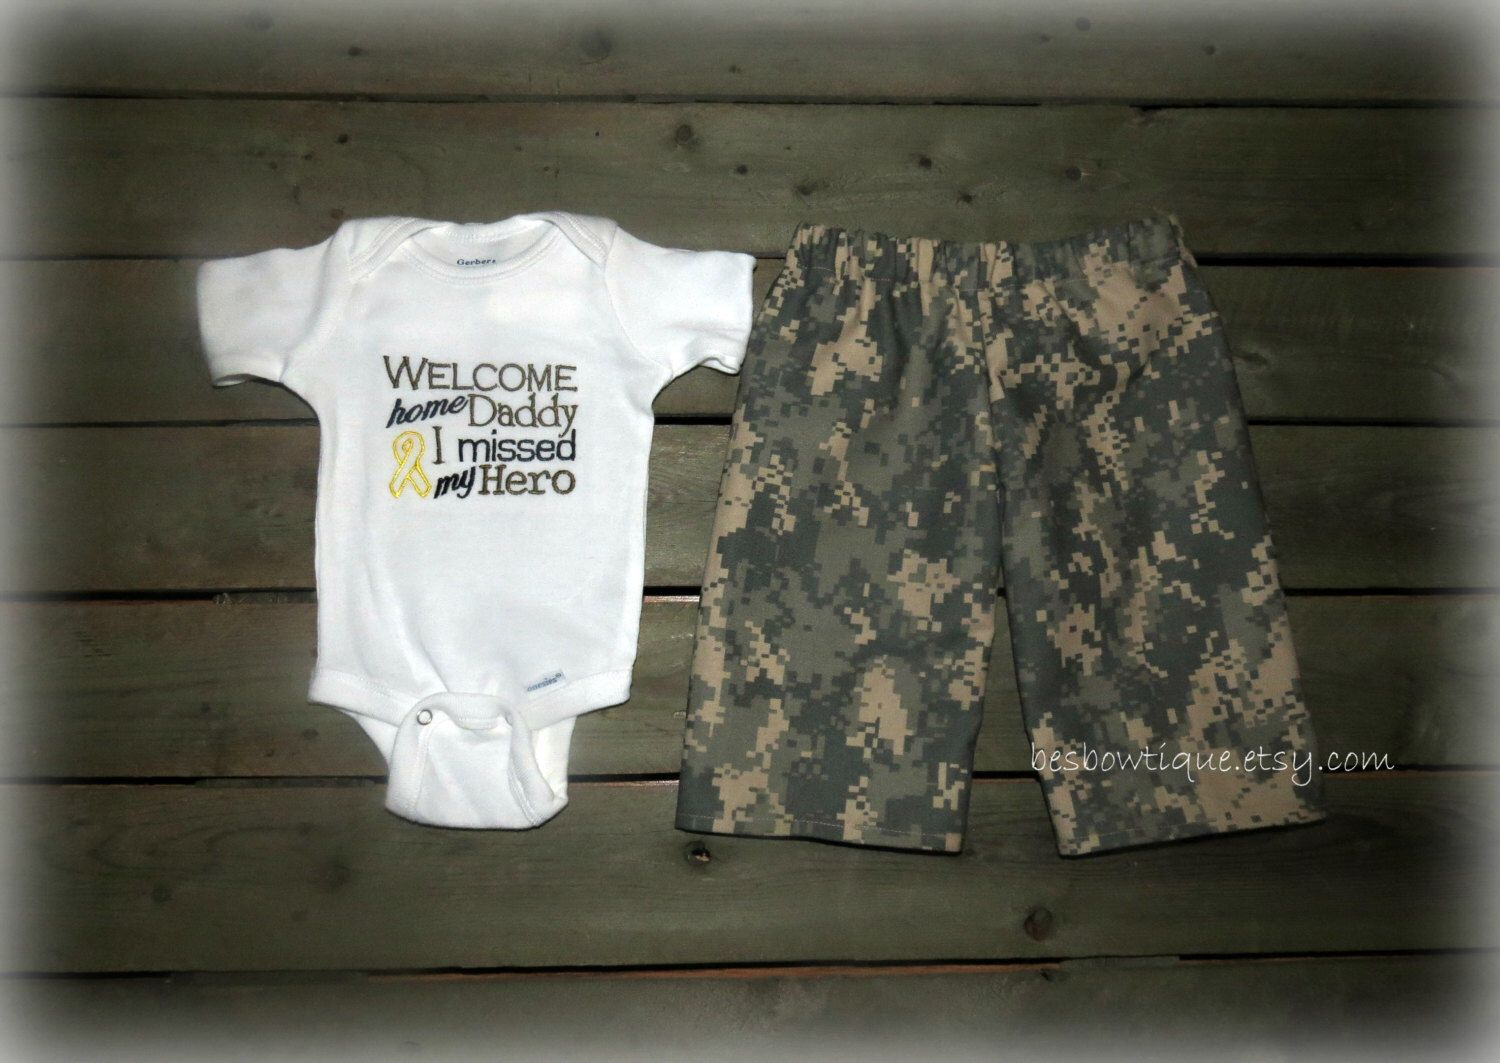 Welcome Home Daddy I Missed My Hero Boy's Military Welcome Home Outfit- For Sizes Newborn-5T- Army, Navy, Marines, and Airforce by BesBowtique on Etsy https://www.etsy.com/listing/175191208/welcome-home-daddy-i-missed-my-hero-boys